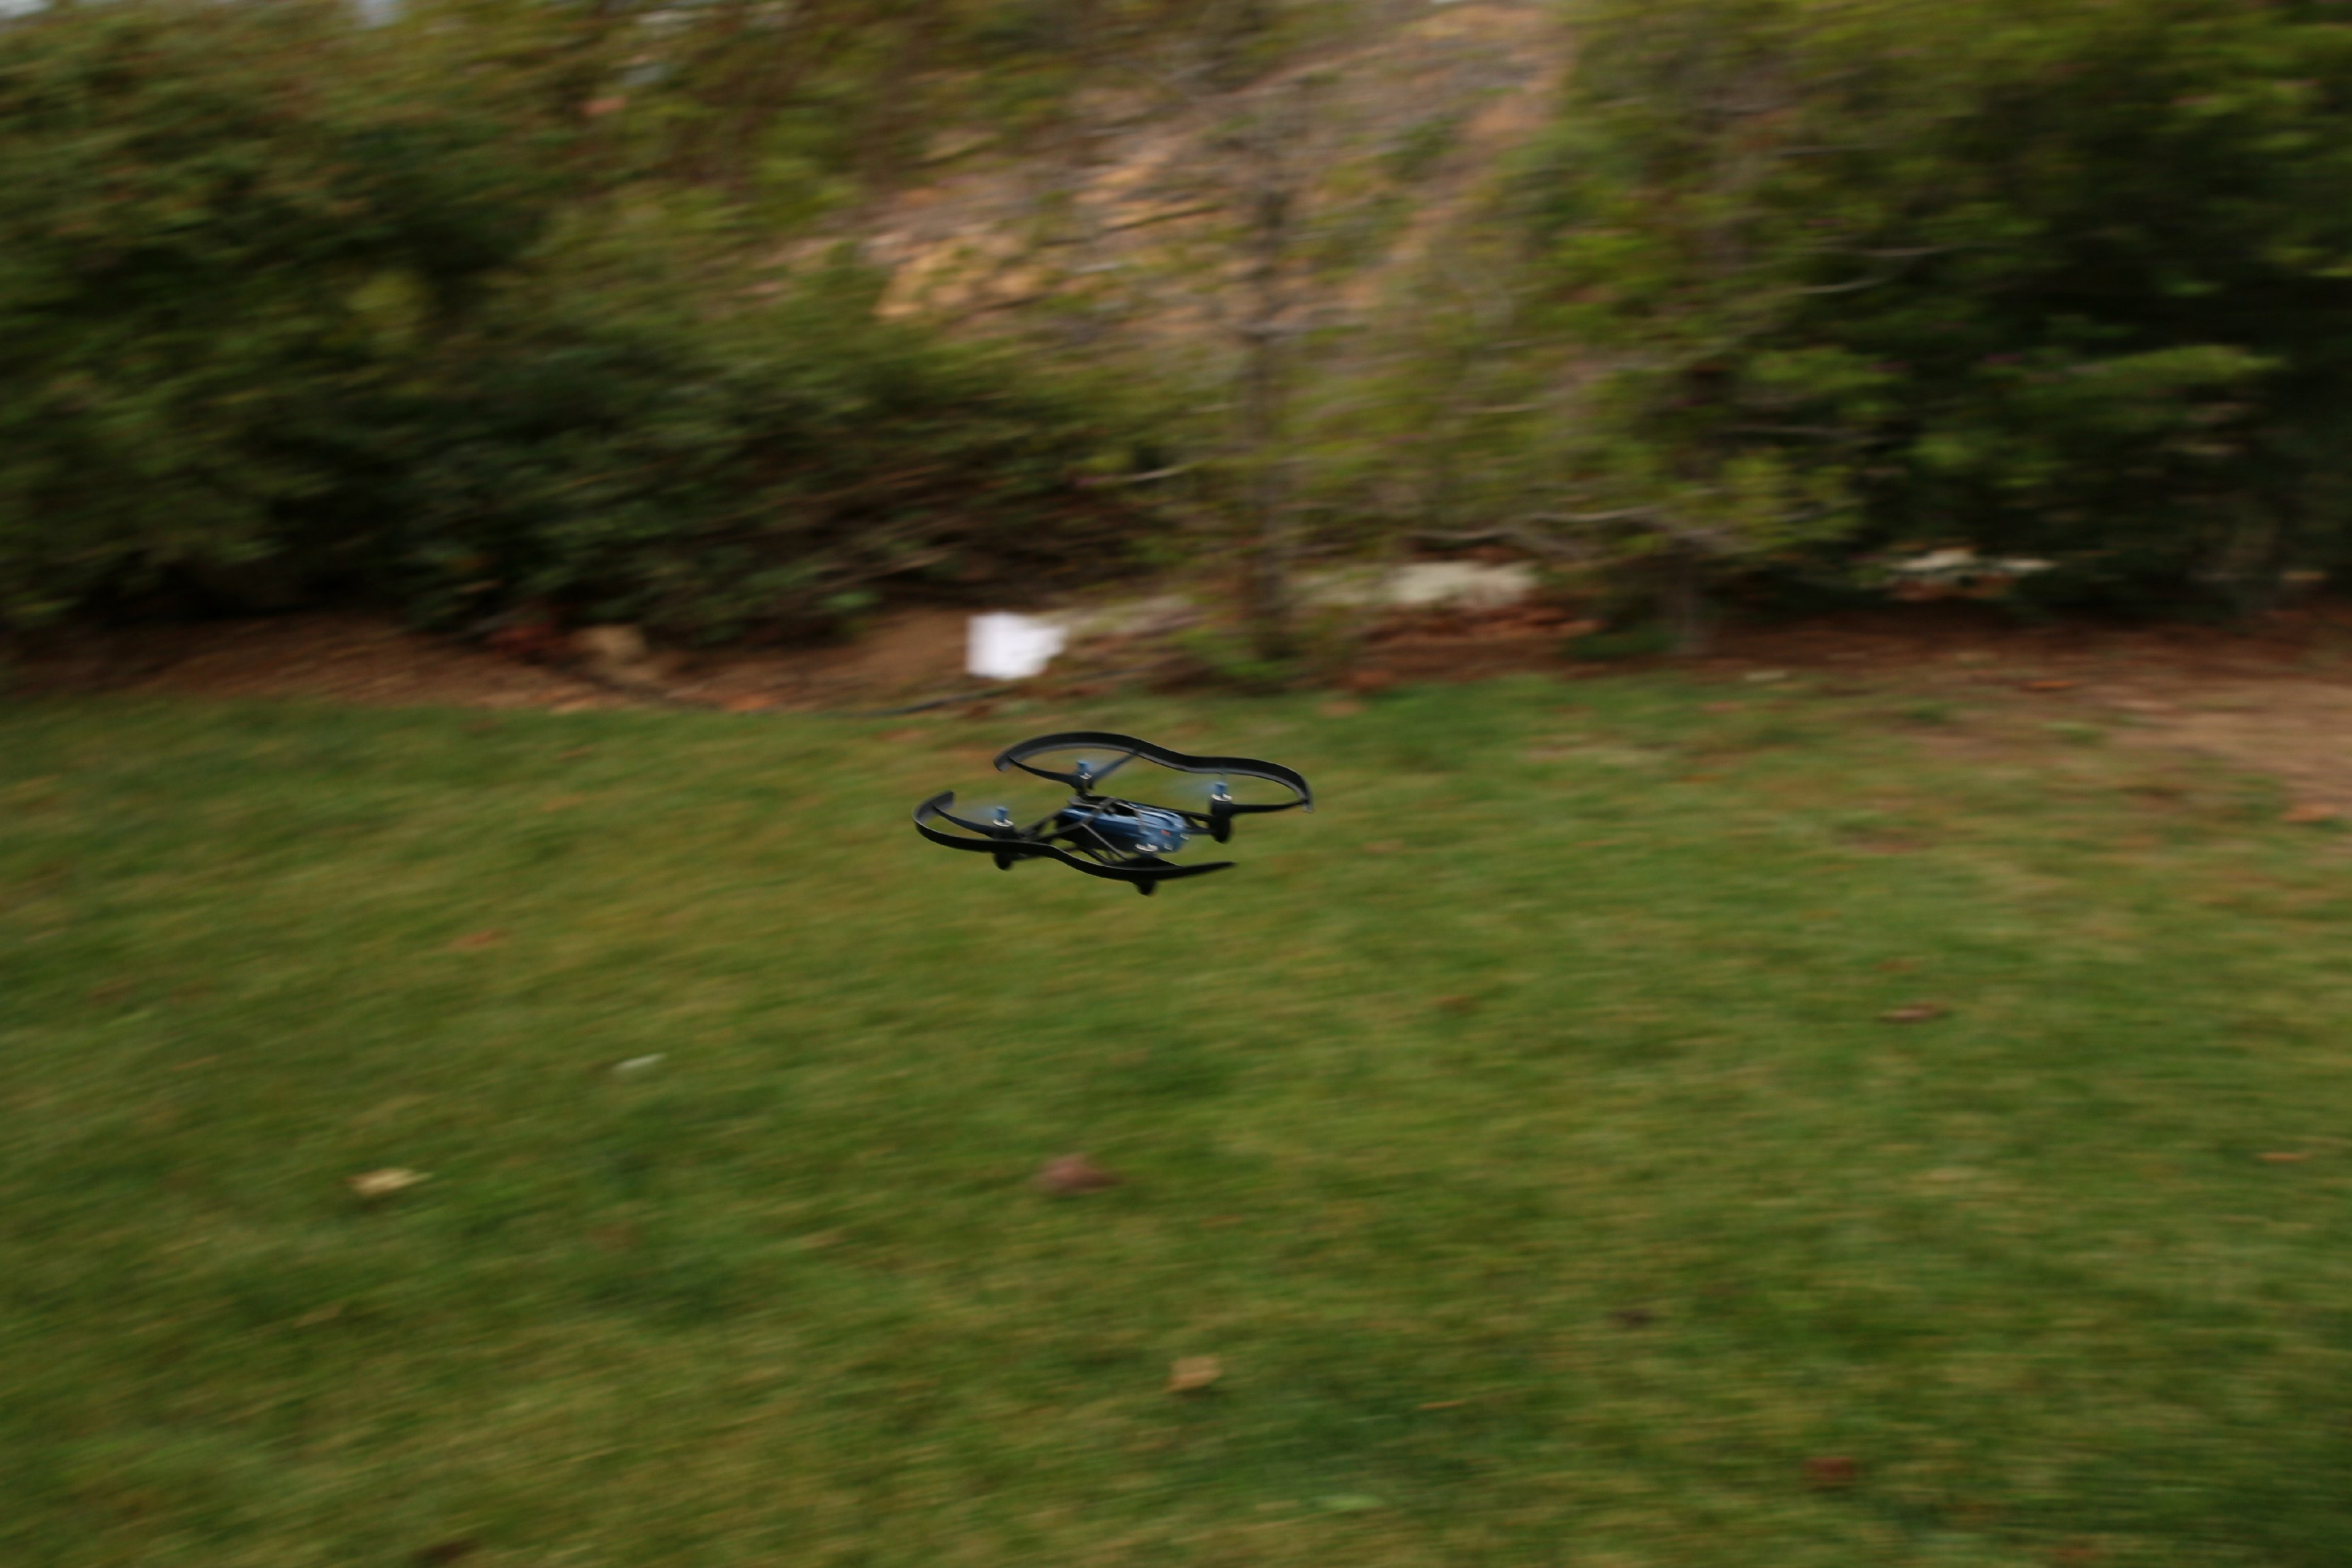 family friendly drone